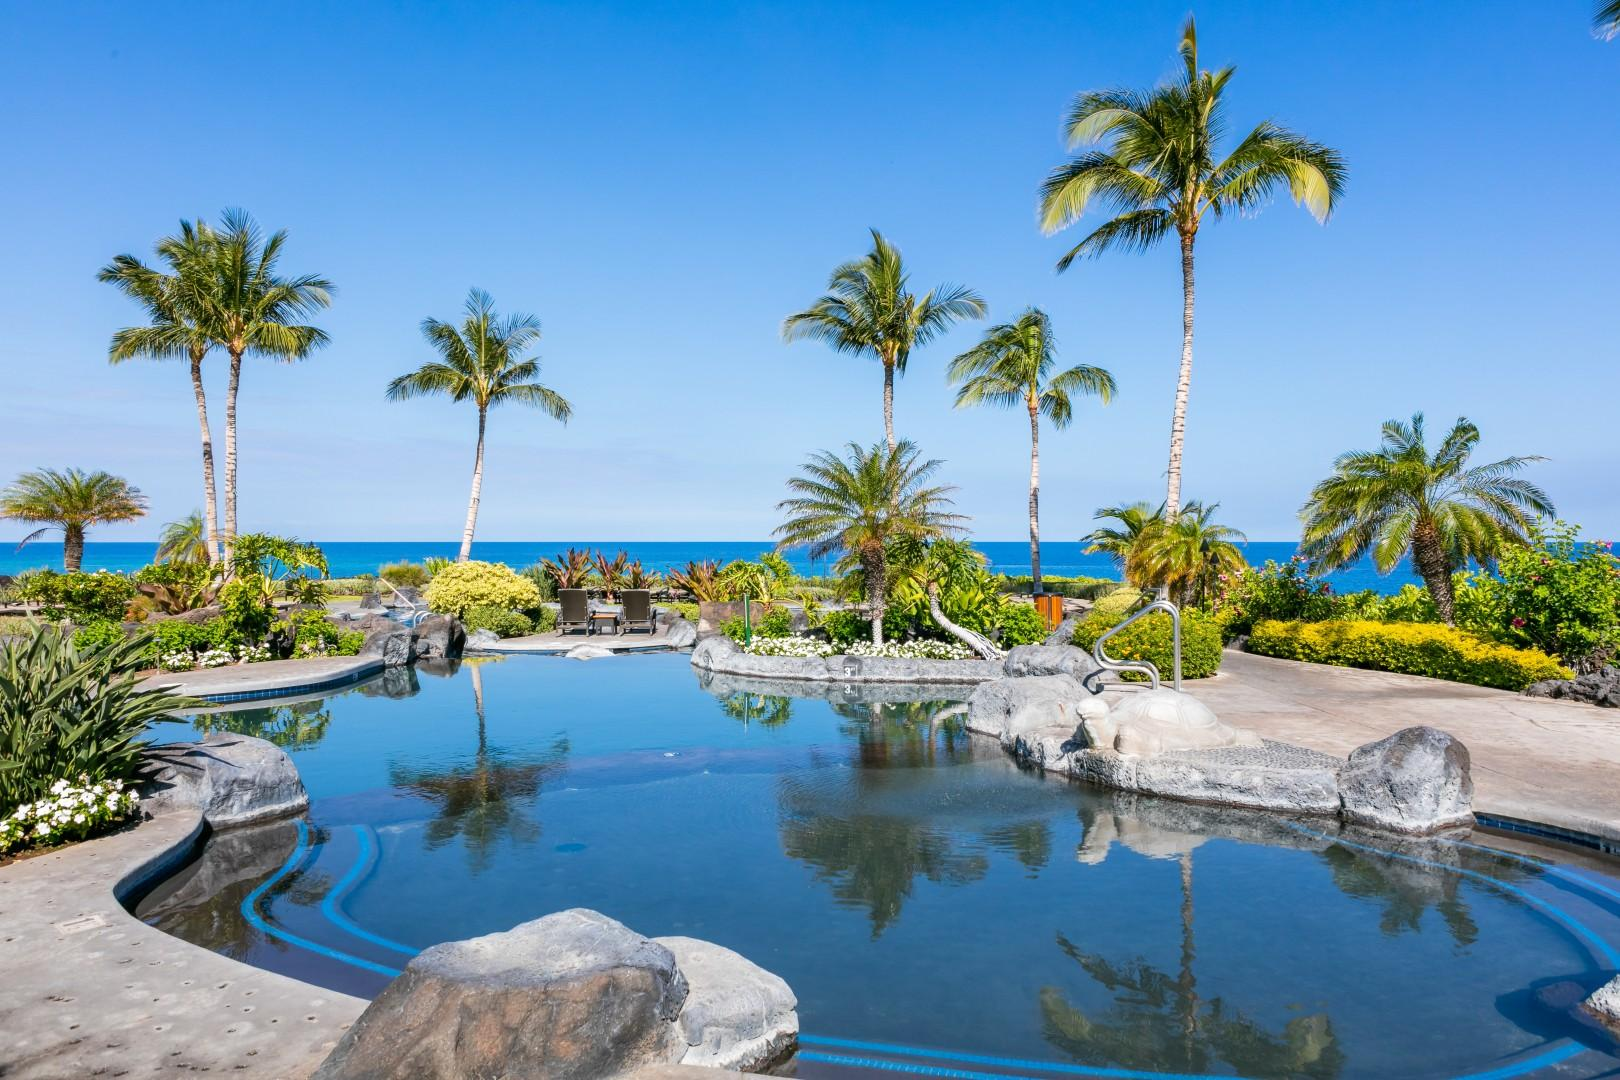 The resorts one-of-a-kind pool pavillion is incredible.